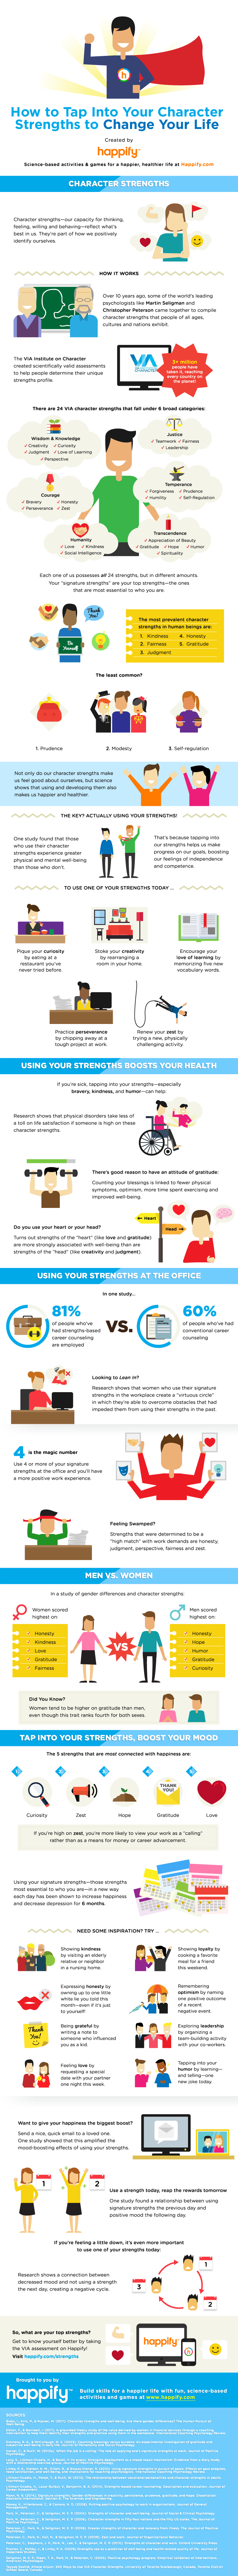 how to be happier at work the muse infographic courtesy of happify photo of happy w courtesy of shutterstock